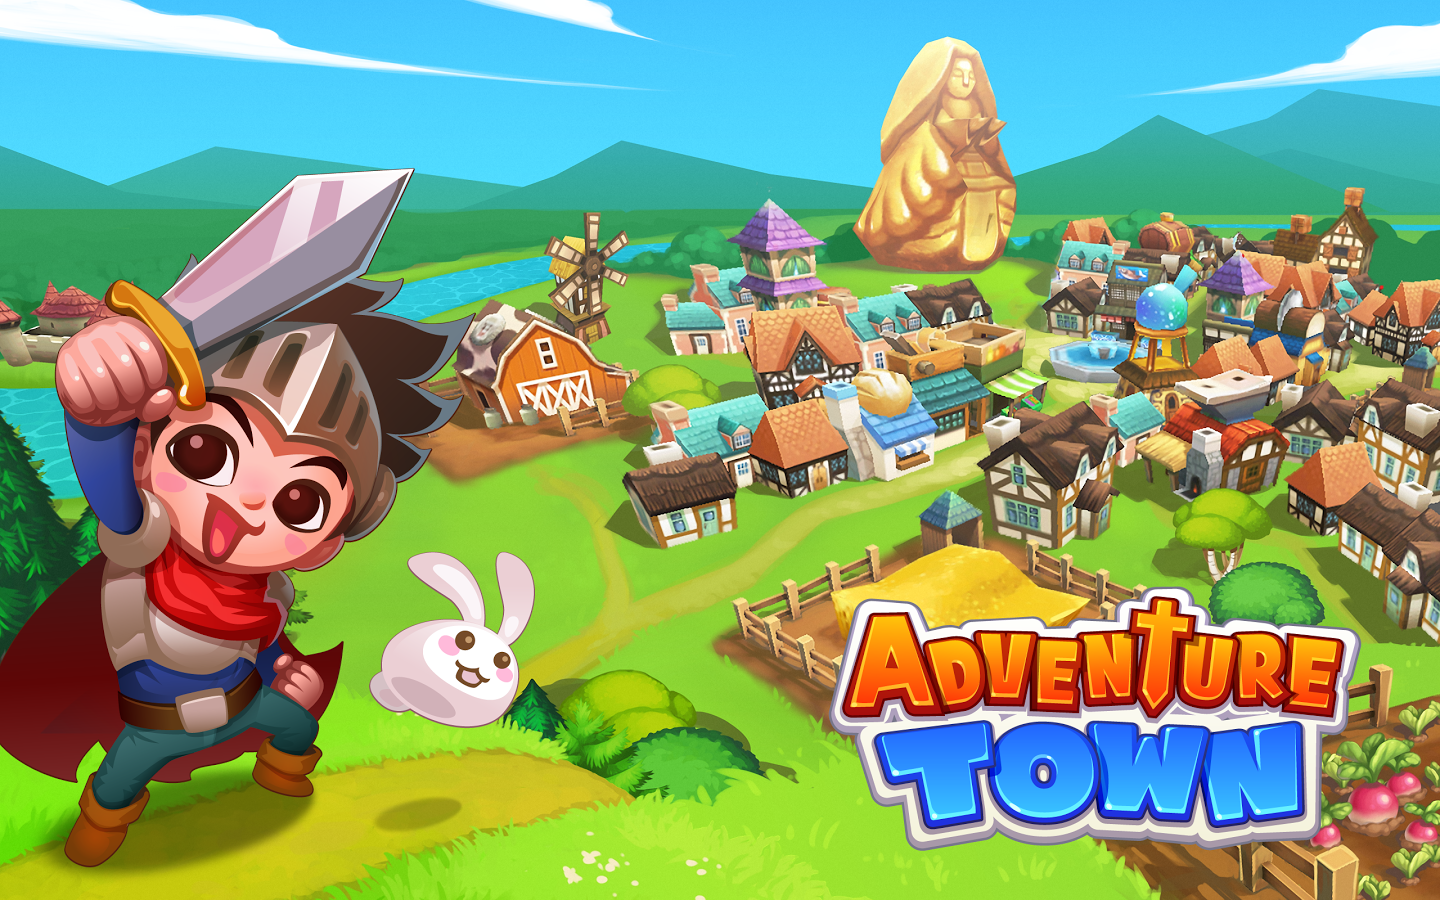 Download List Games Adventure And Rpg Offline And Online